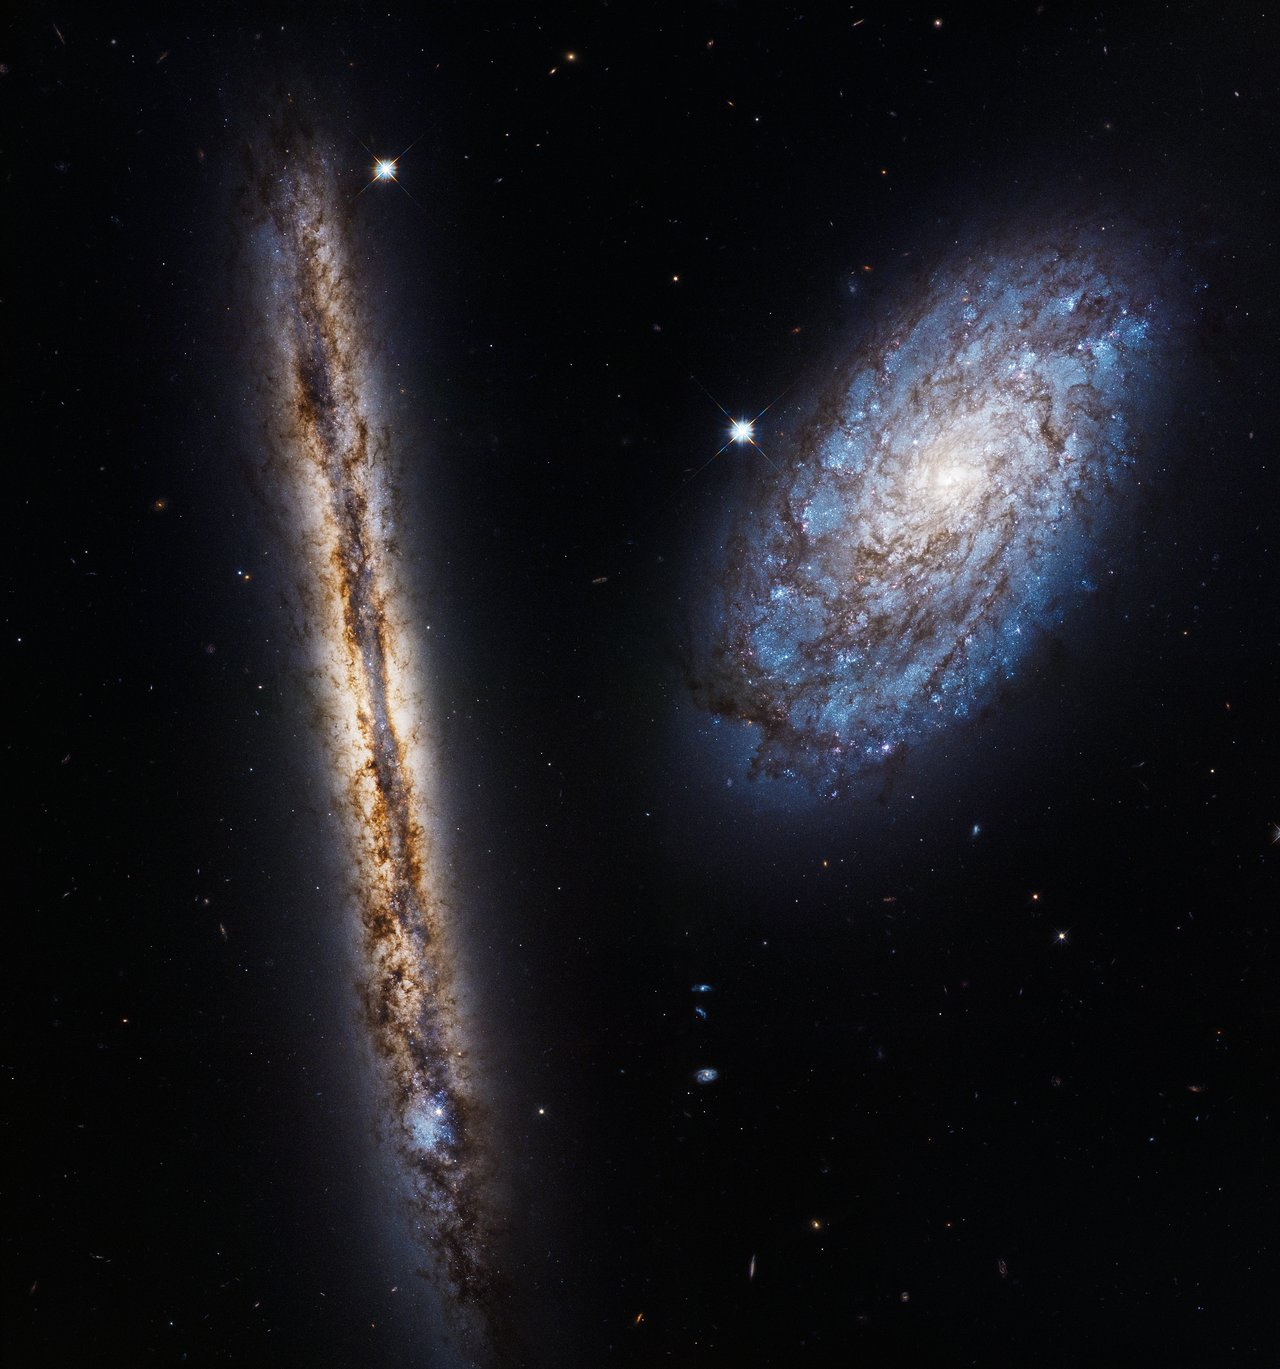 This image displays the galaxies NGC 4302 — seen edge-on — and NGC 4298, both located 55 million light-years away. They were observed by Hubble to celebrate its 27th year in orbit. The galaxy NGC 4298 is seen almost face-on, allowing us to see its spiral arms and the blue patches of ongoing star formation and young stars. In the edge-on disc of NGC 4302 huge swathes of dust are responsible for the mottled brown patterns, but a burst of blue to the left side of the galaxy indicates a region of extremely vigorous star formation. The image is a mosaic of four separate captures from Hubble, taken between 2 and 22 January 2017, that have been stitched together to give this amazing field of view. Two different types of light emitted by the galaxies — visible and near-infrared — have been combined to give a rich and colourful image. This light was captured by Hubble's Wide Field Camera 3, one of the telescope's most advanced imaging instruments.